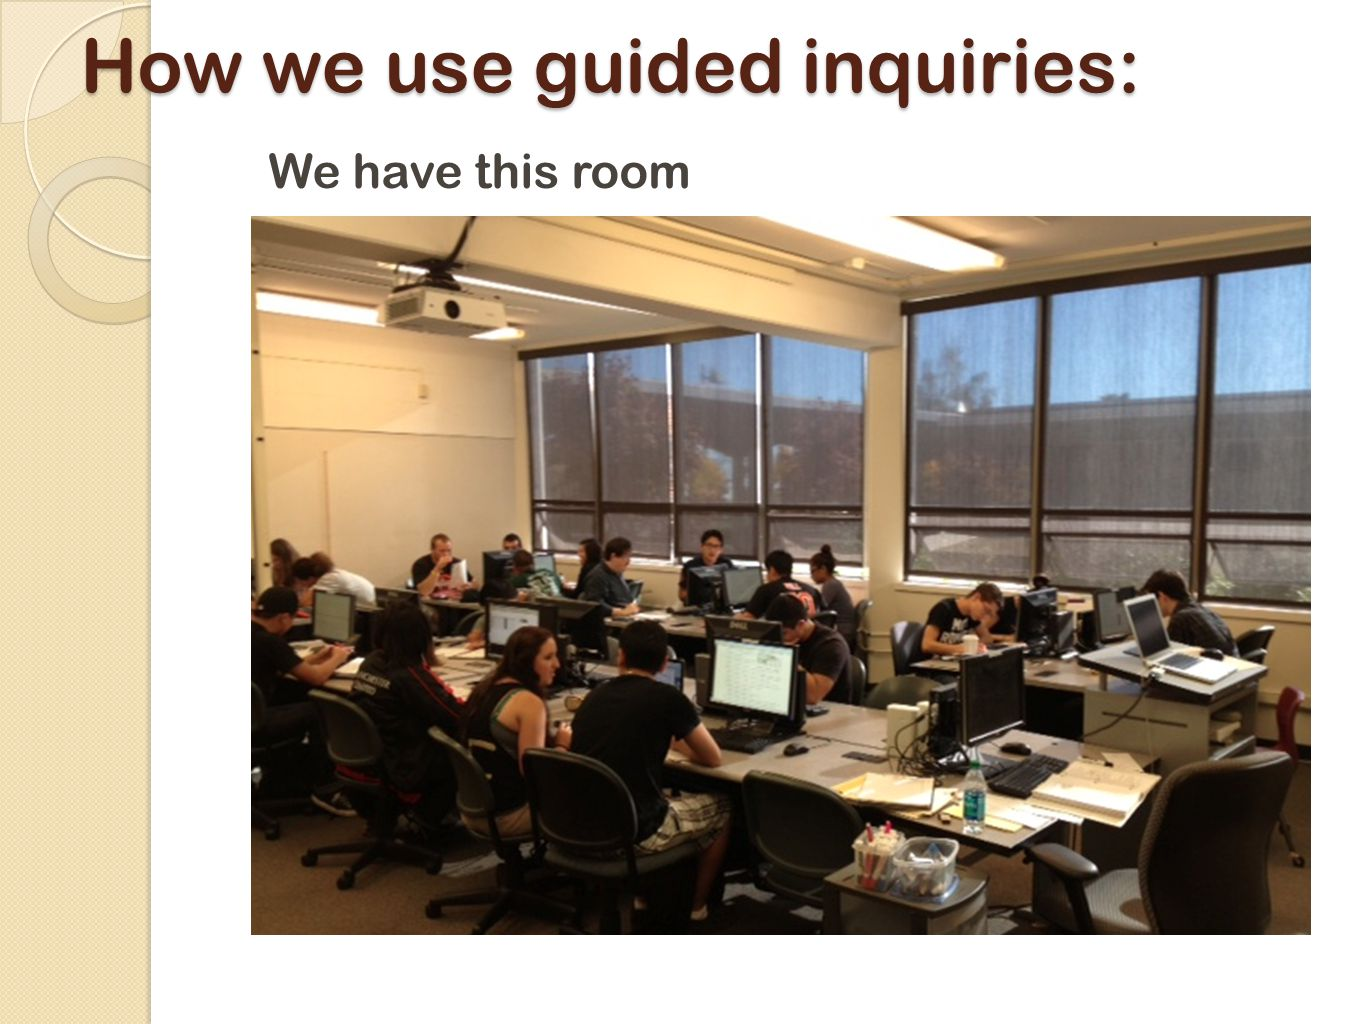 How we use guided inquiries: We have this room